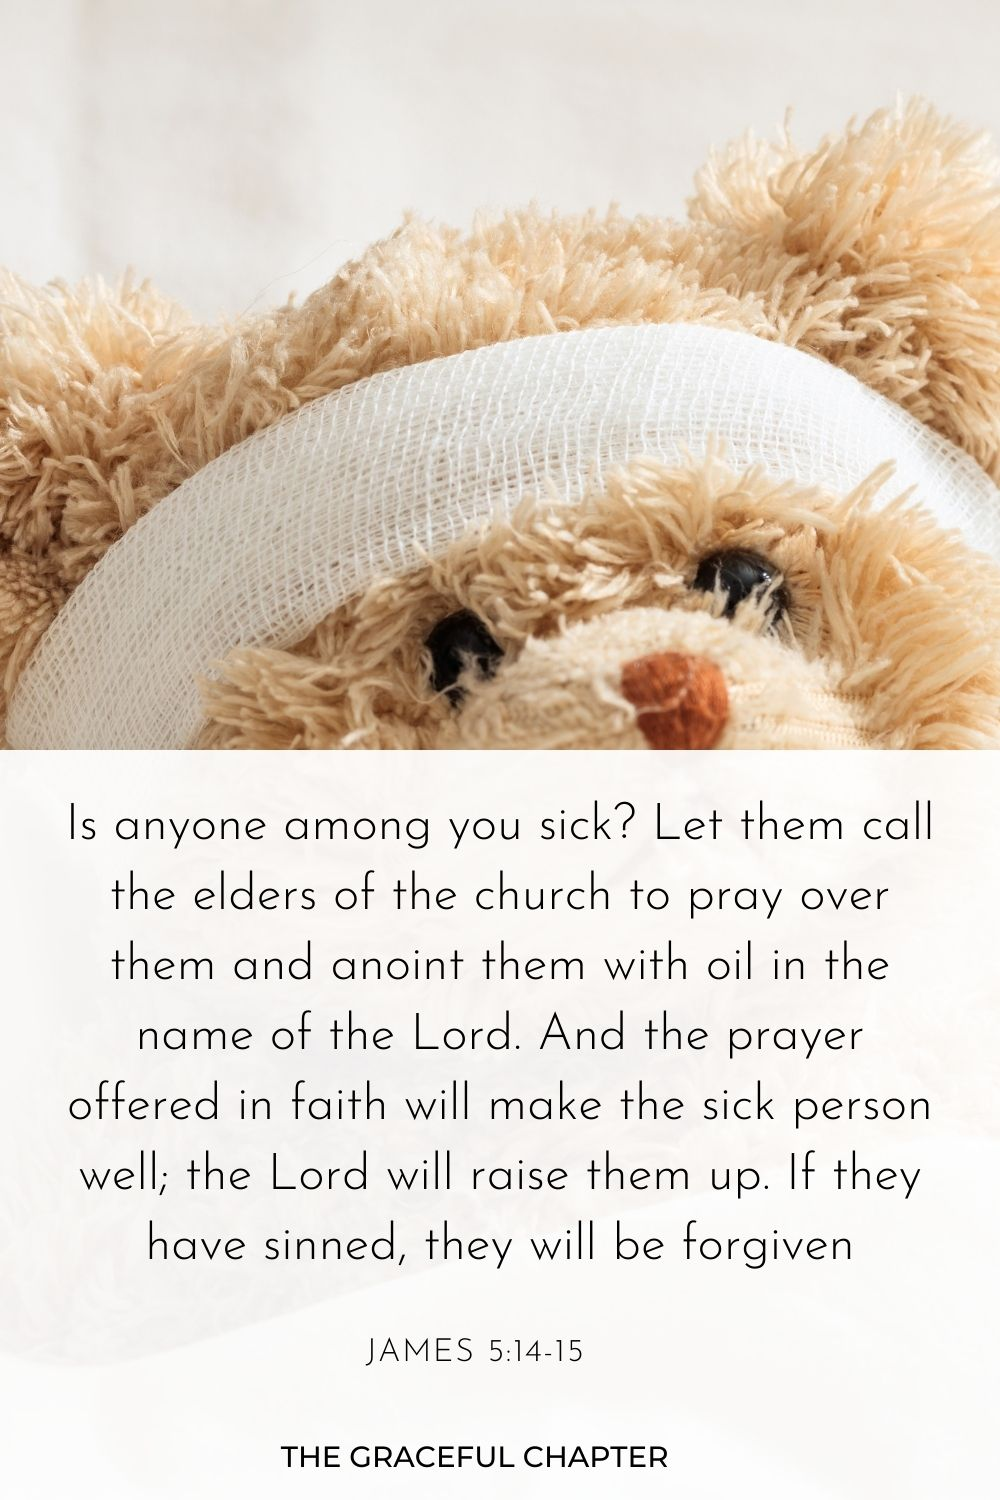 Is anyone among you sick? Let them call the elders of the church to pray over them and anoint them with oil in the name of the Lord. And the prayer offered in faith will make the sick person well; the Lord will raise them up. If they have sinned, they will be forgiven James 5:14-15